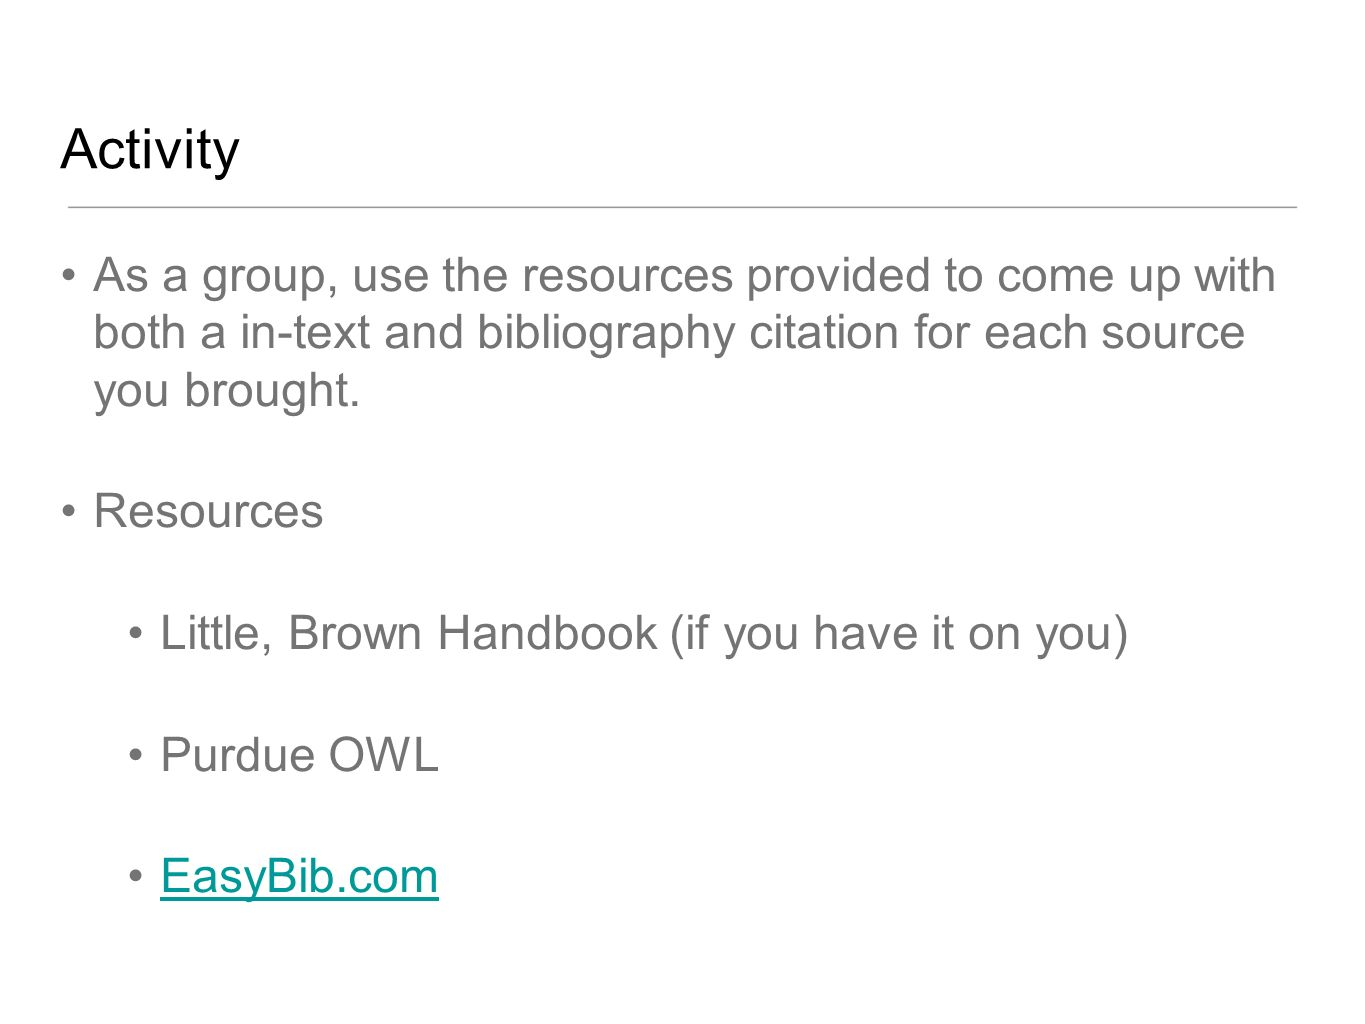 Activity As a group, use the resources provided to come up with both a in-text and bibliography citation for each source you brought.